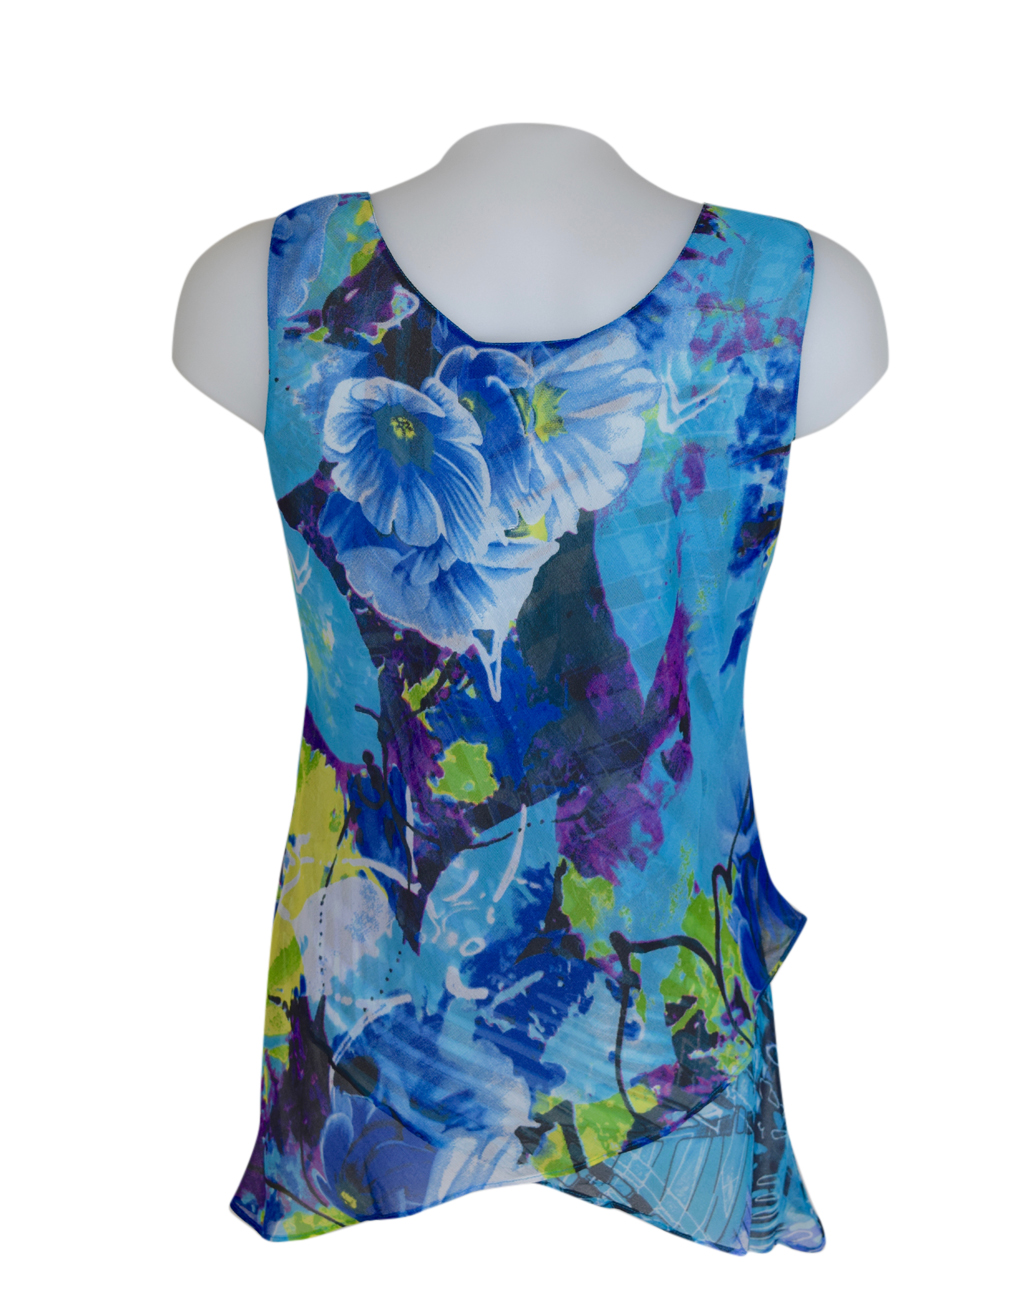 Paramour Reversible 2 in 1 Sleeveless Top Turquoise4